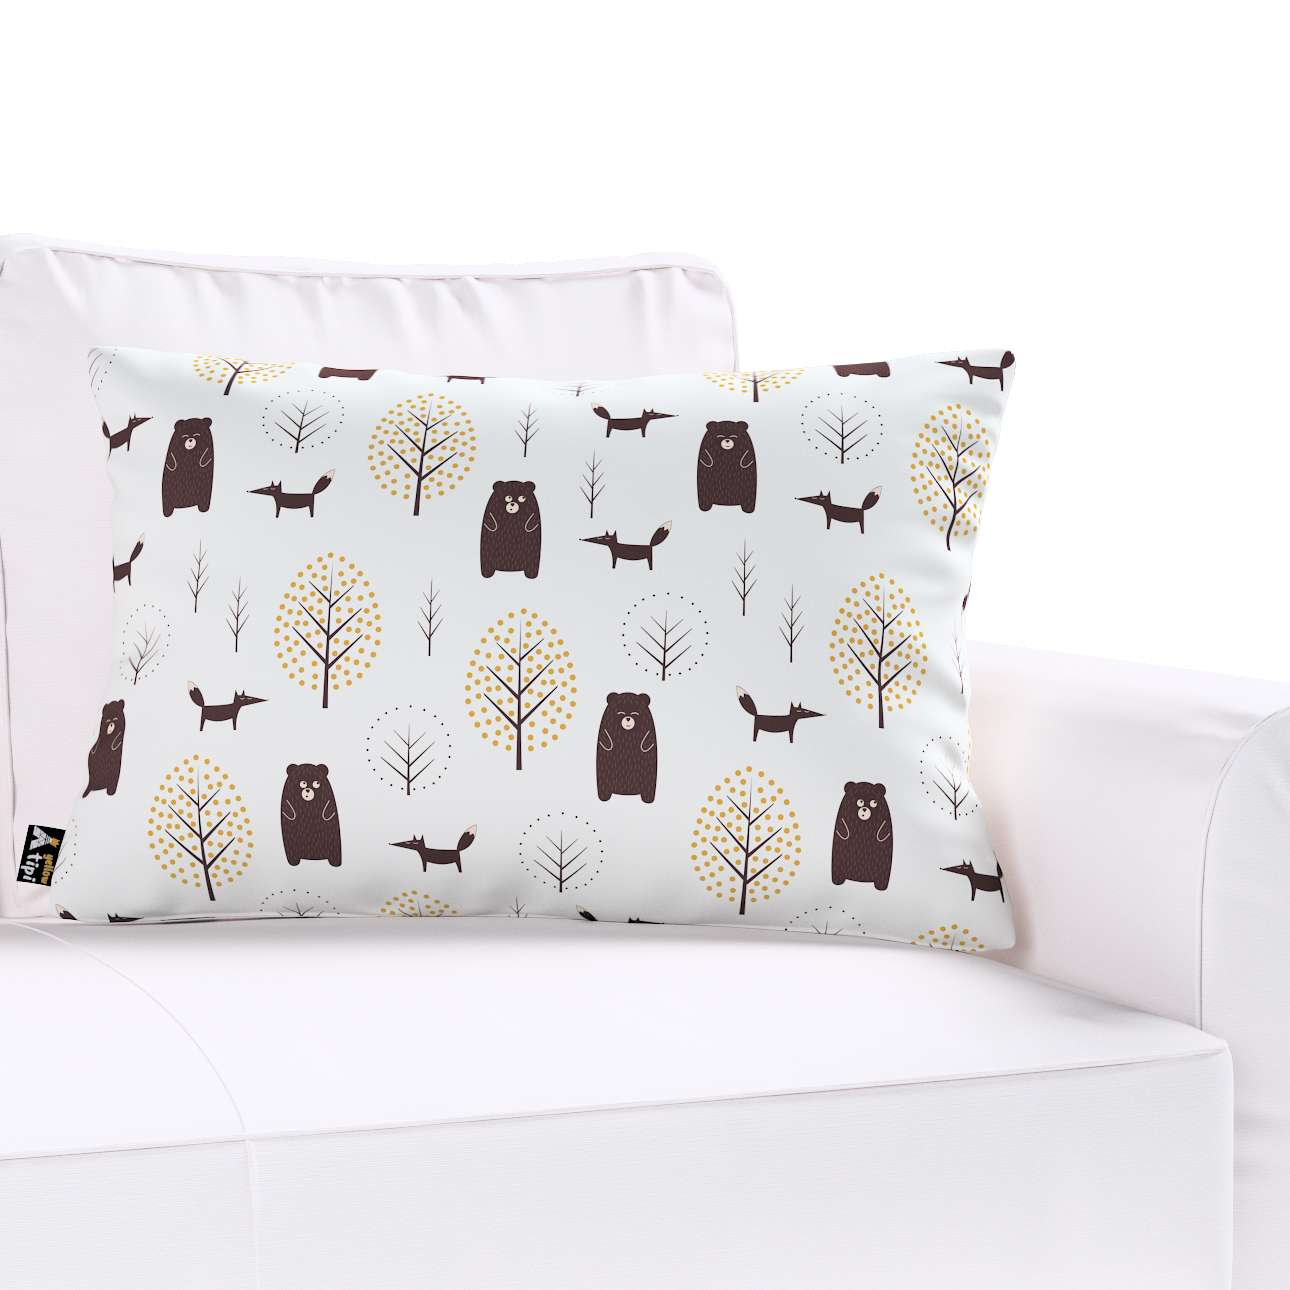 Milly rectangular cushion cover in collection Magic Collection, fabric: 500-19